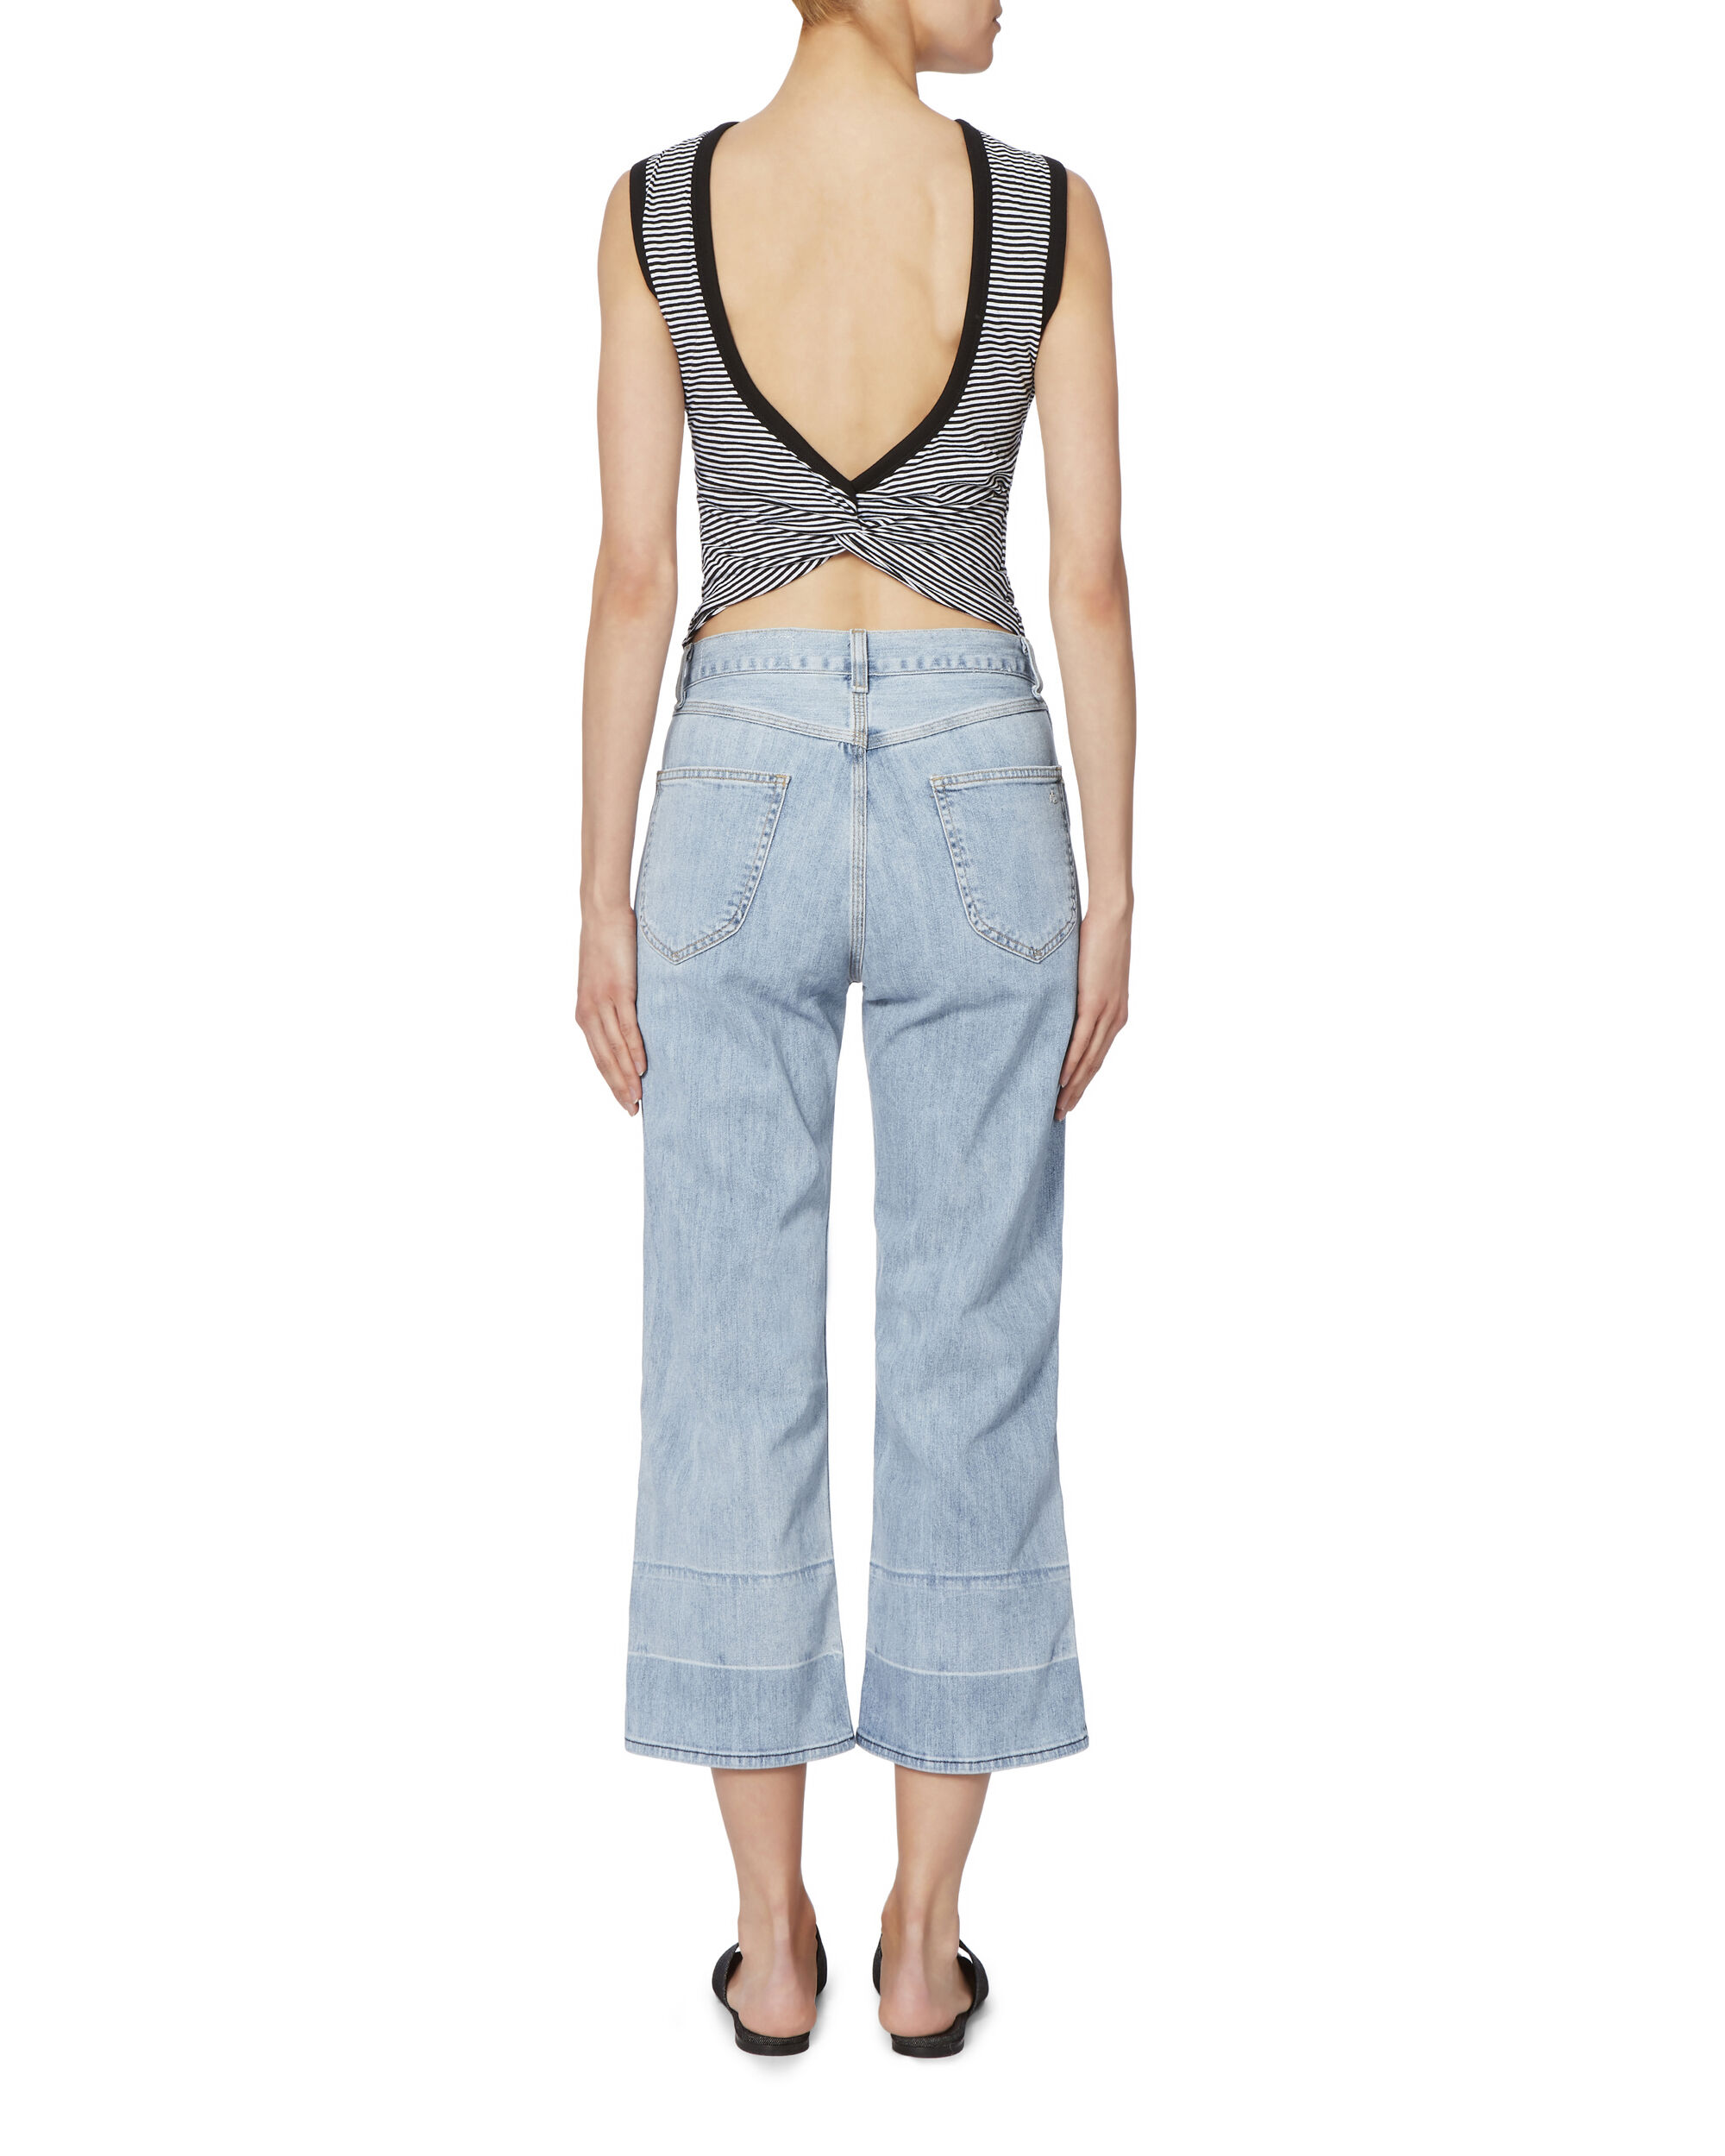 Lou High-Rise Crop Jeans, DENIM, hi-res